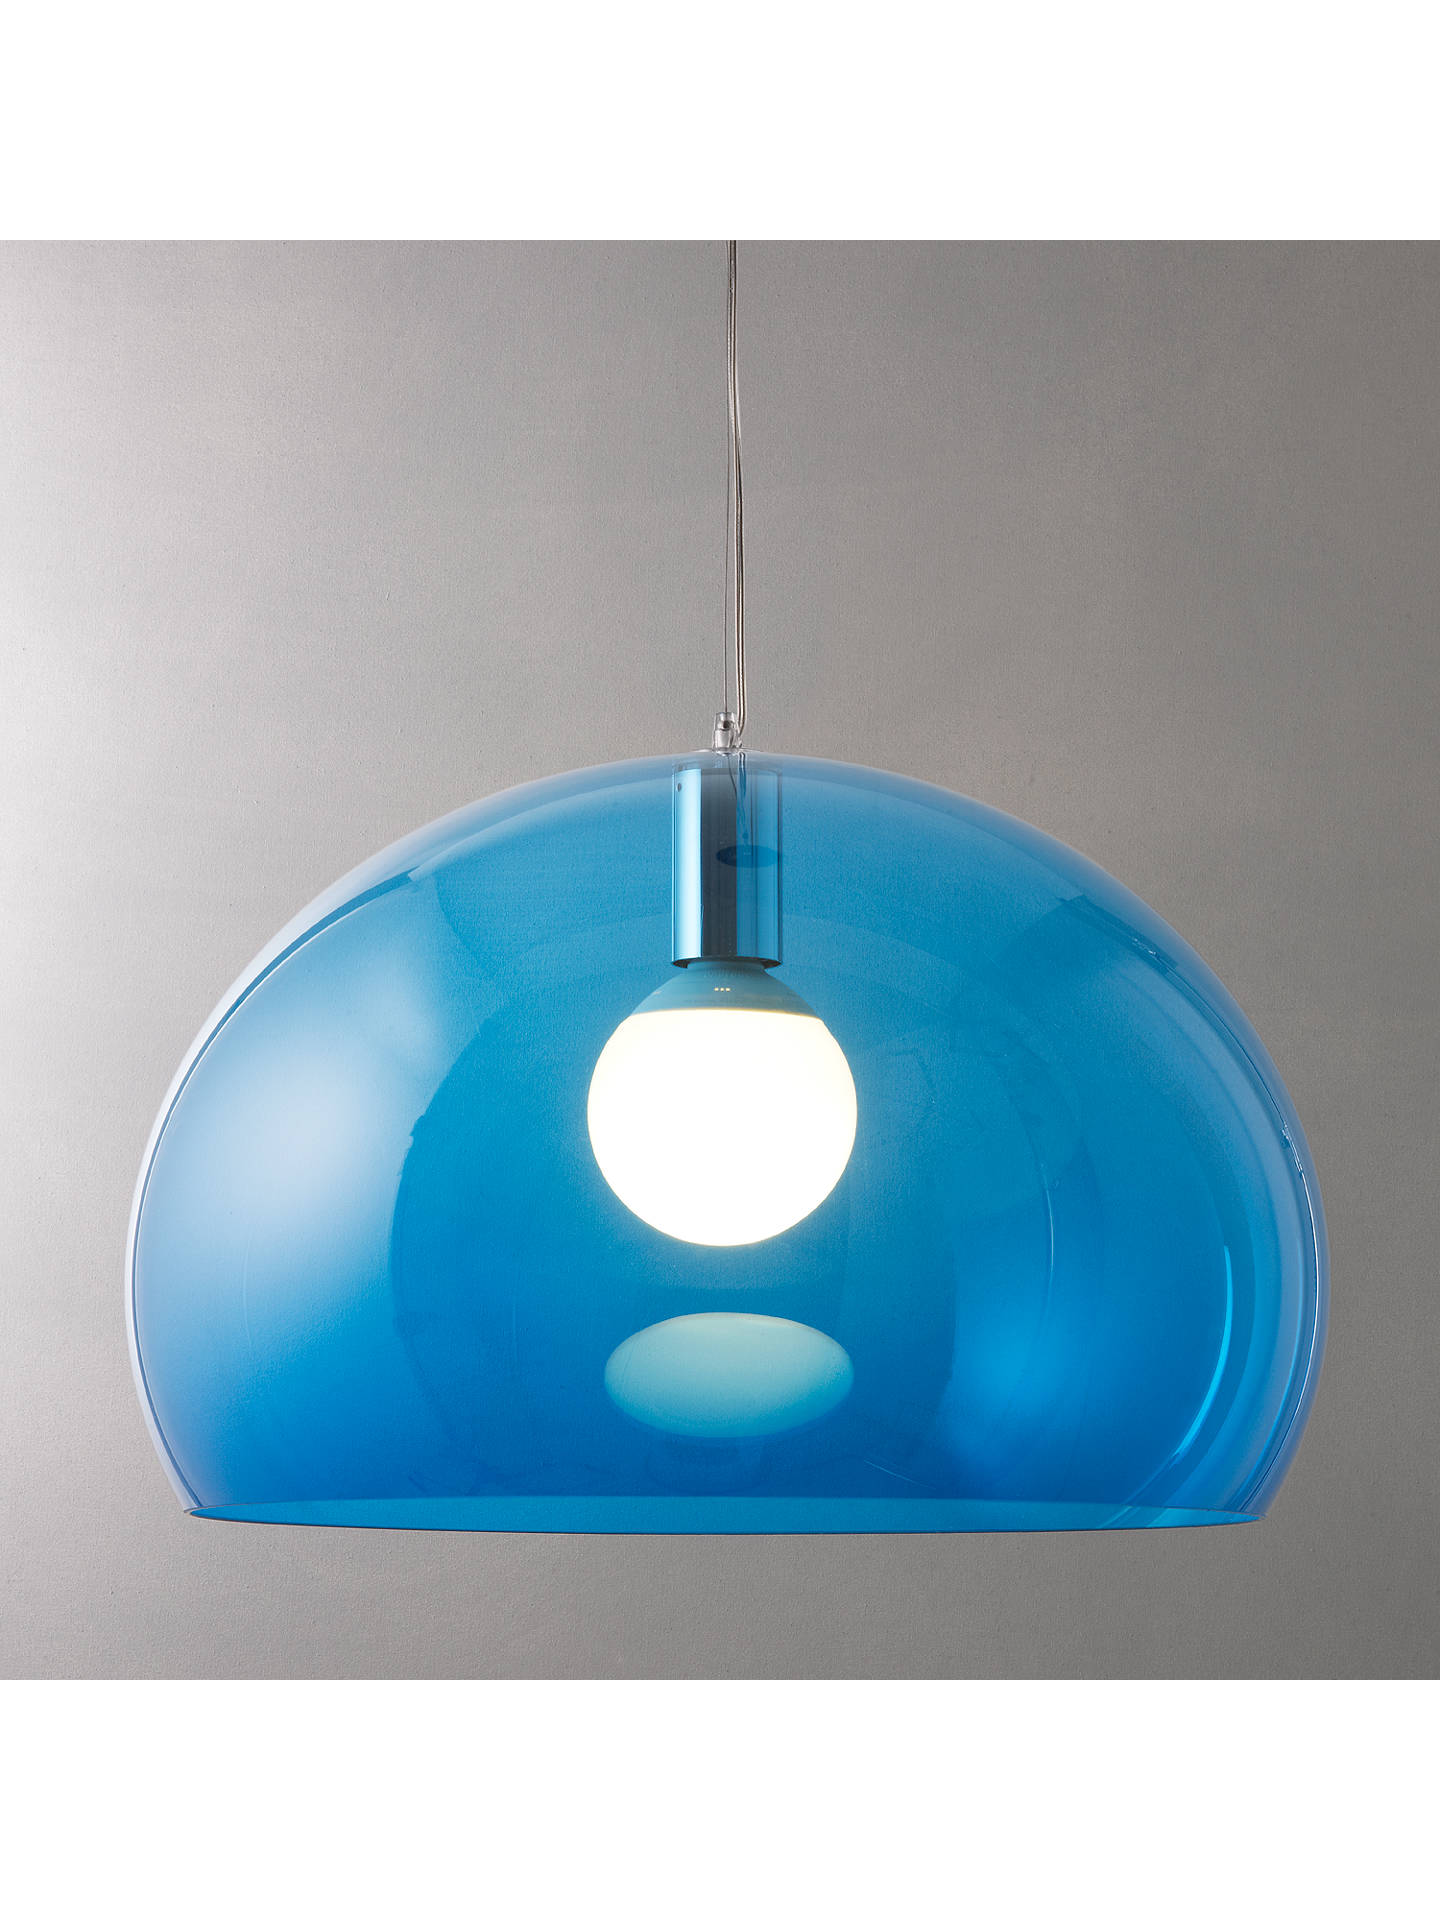 Kartell Fly Ceiling Light At John Lewis Amp Partners